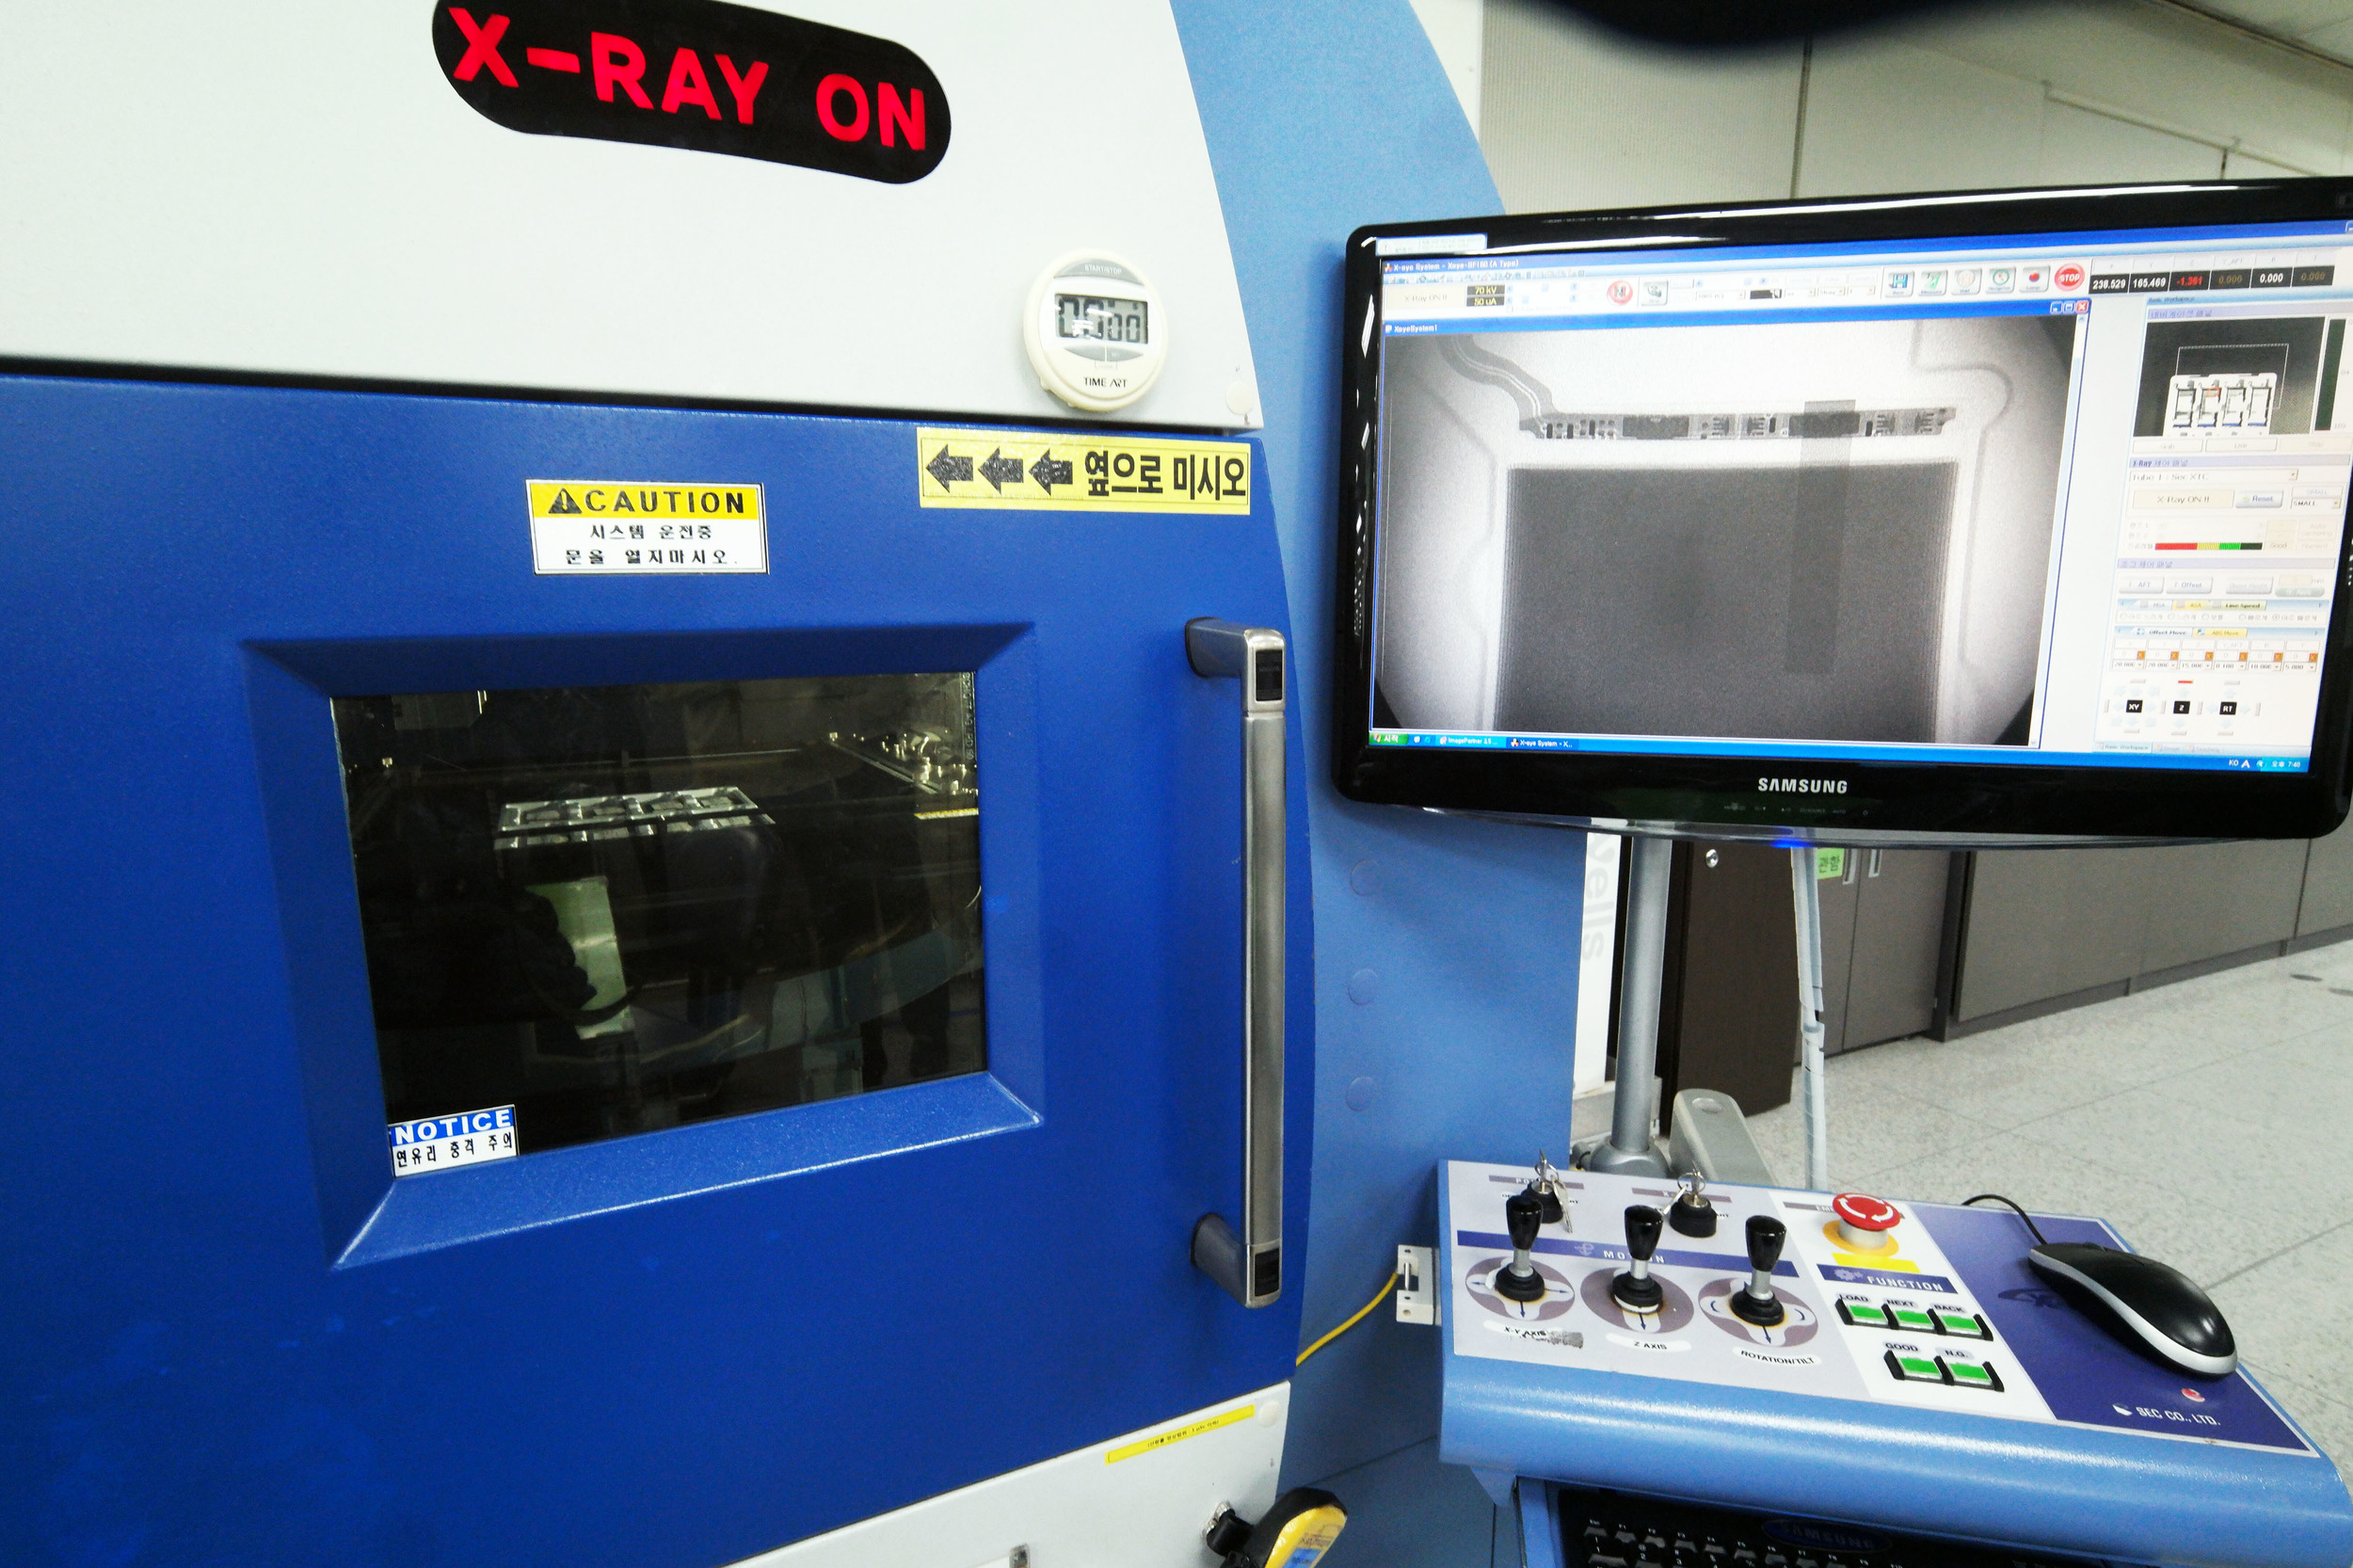 15-8-point-battery-safety-check-x-ray-1.jpg